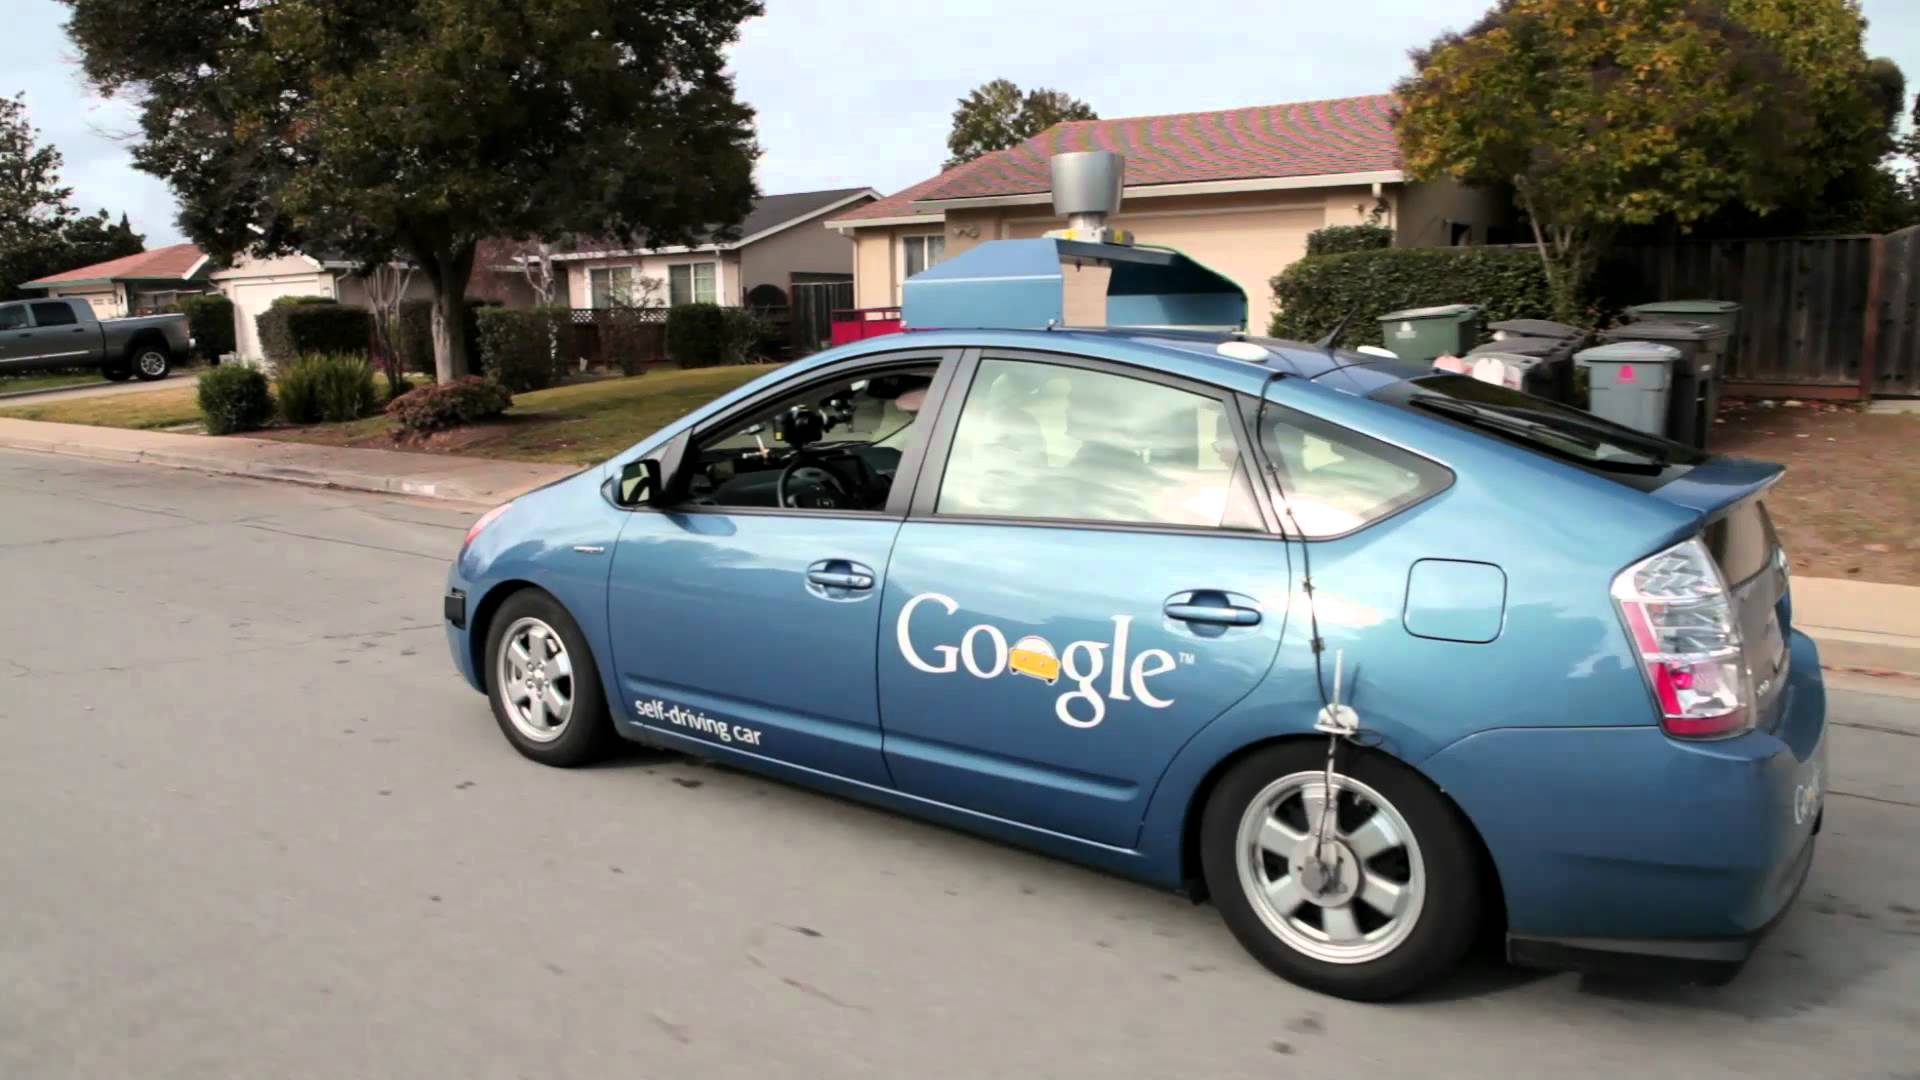 Google, although a tech brand, is the face of the self driving car.